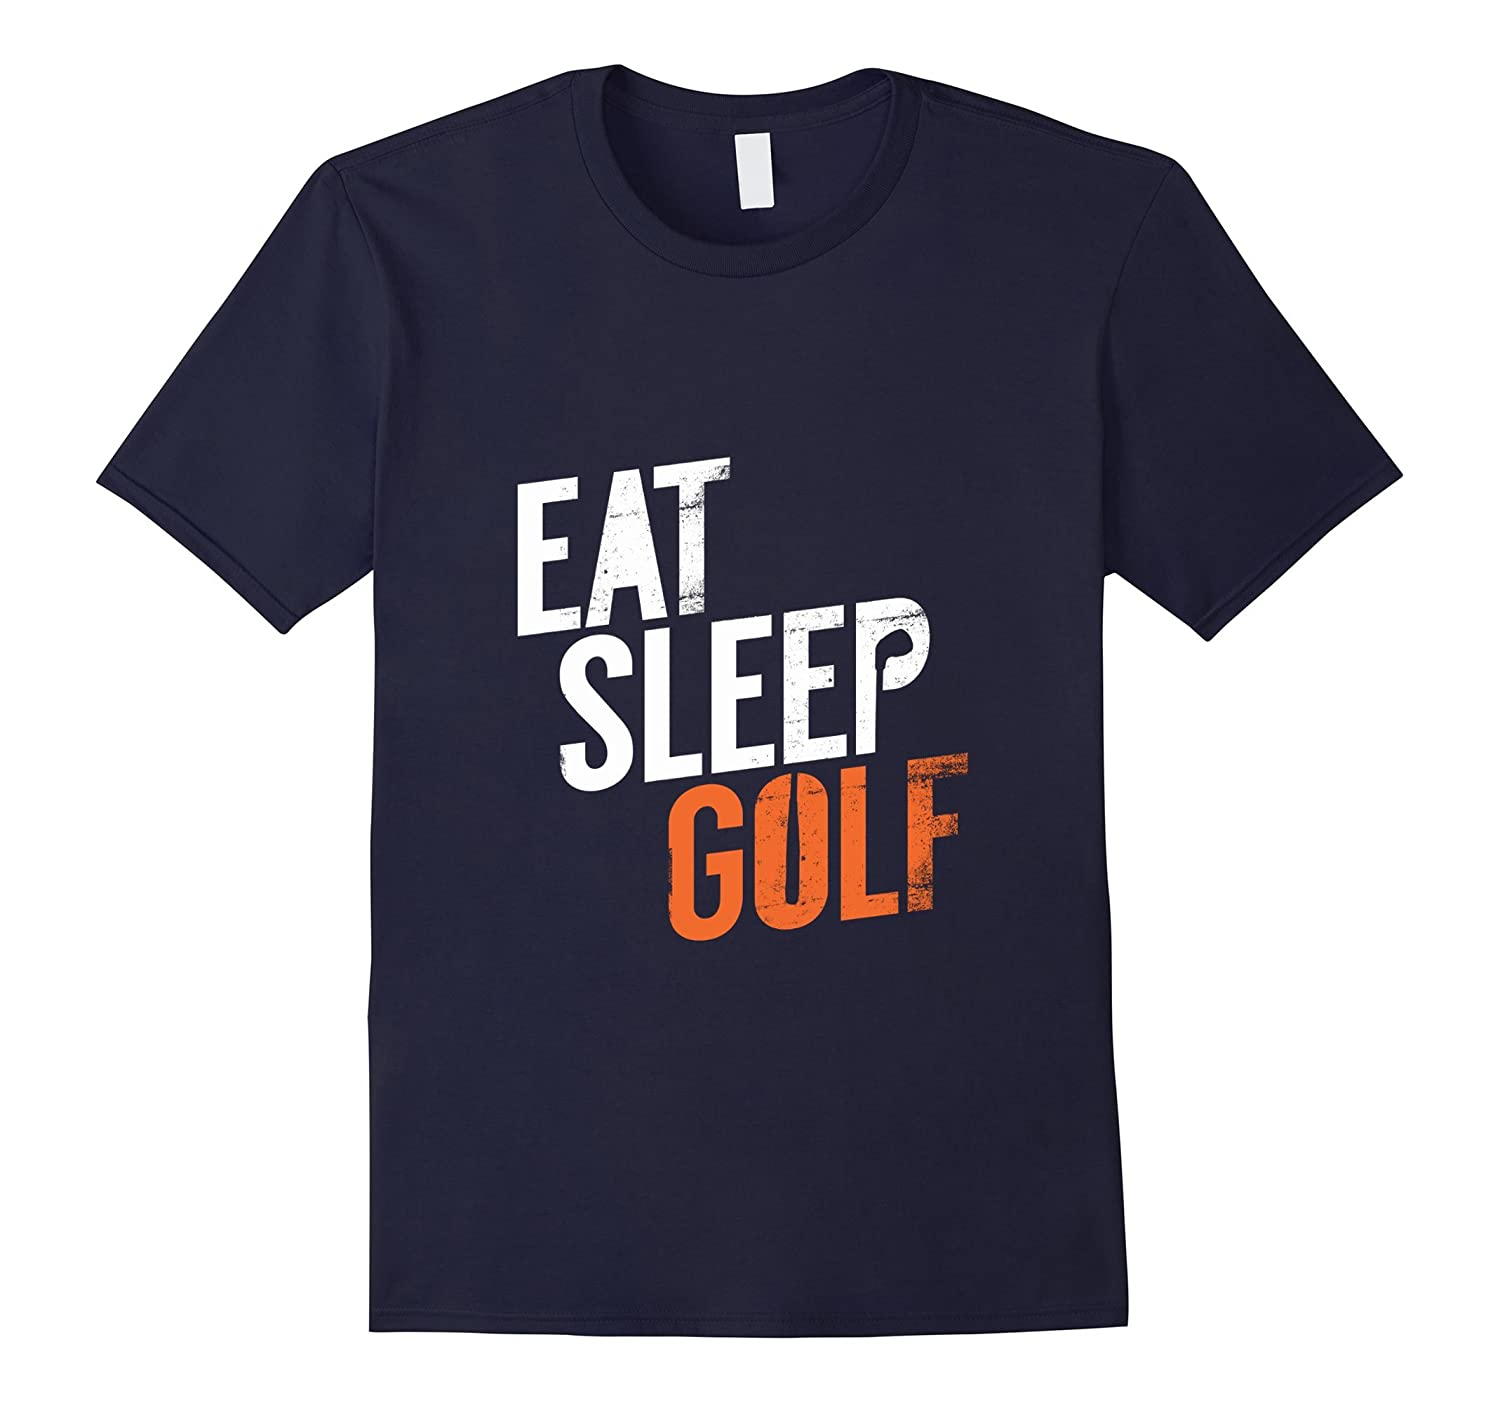 Golf Shirt - Eat Sleep Golf T-Shirt for Golf Fans Lovers-TH